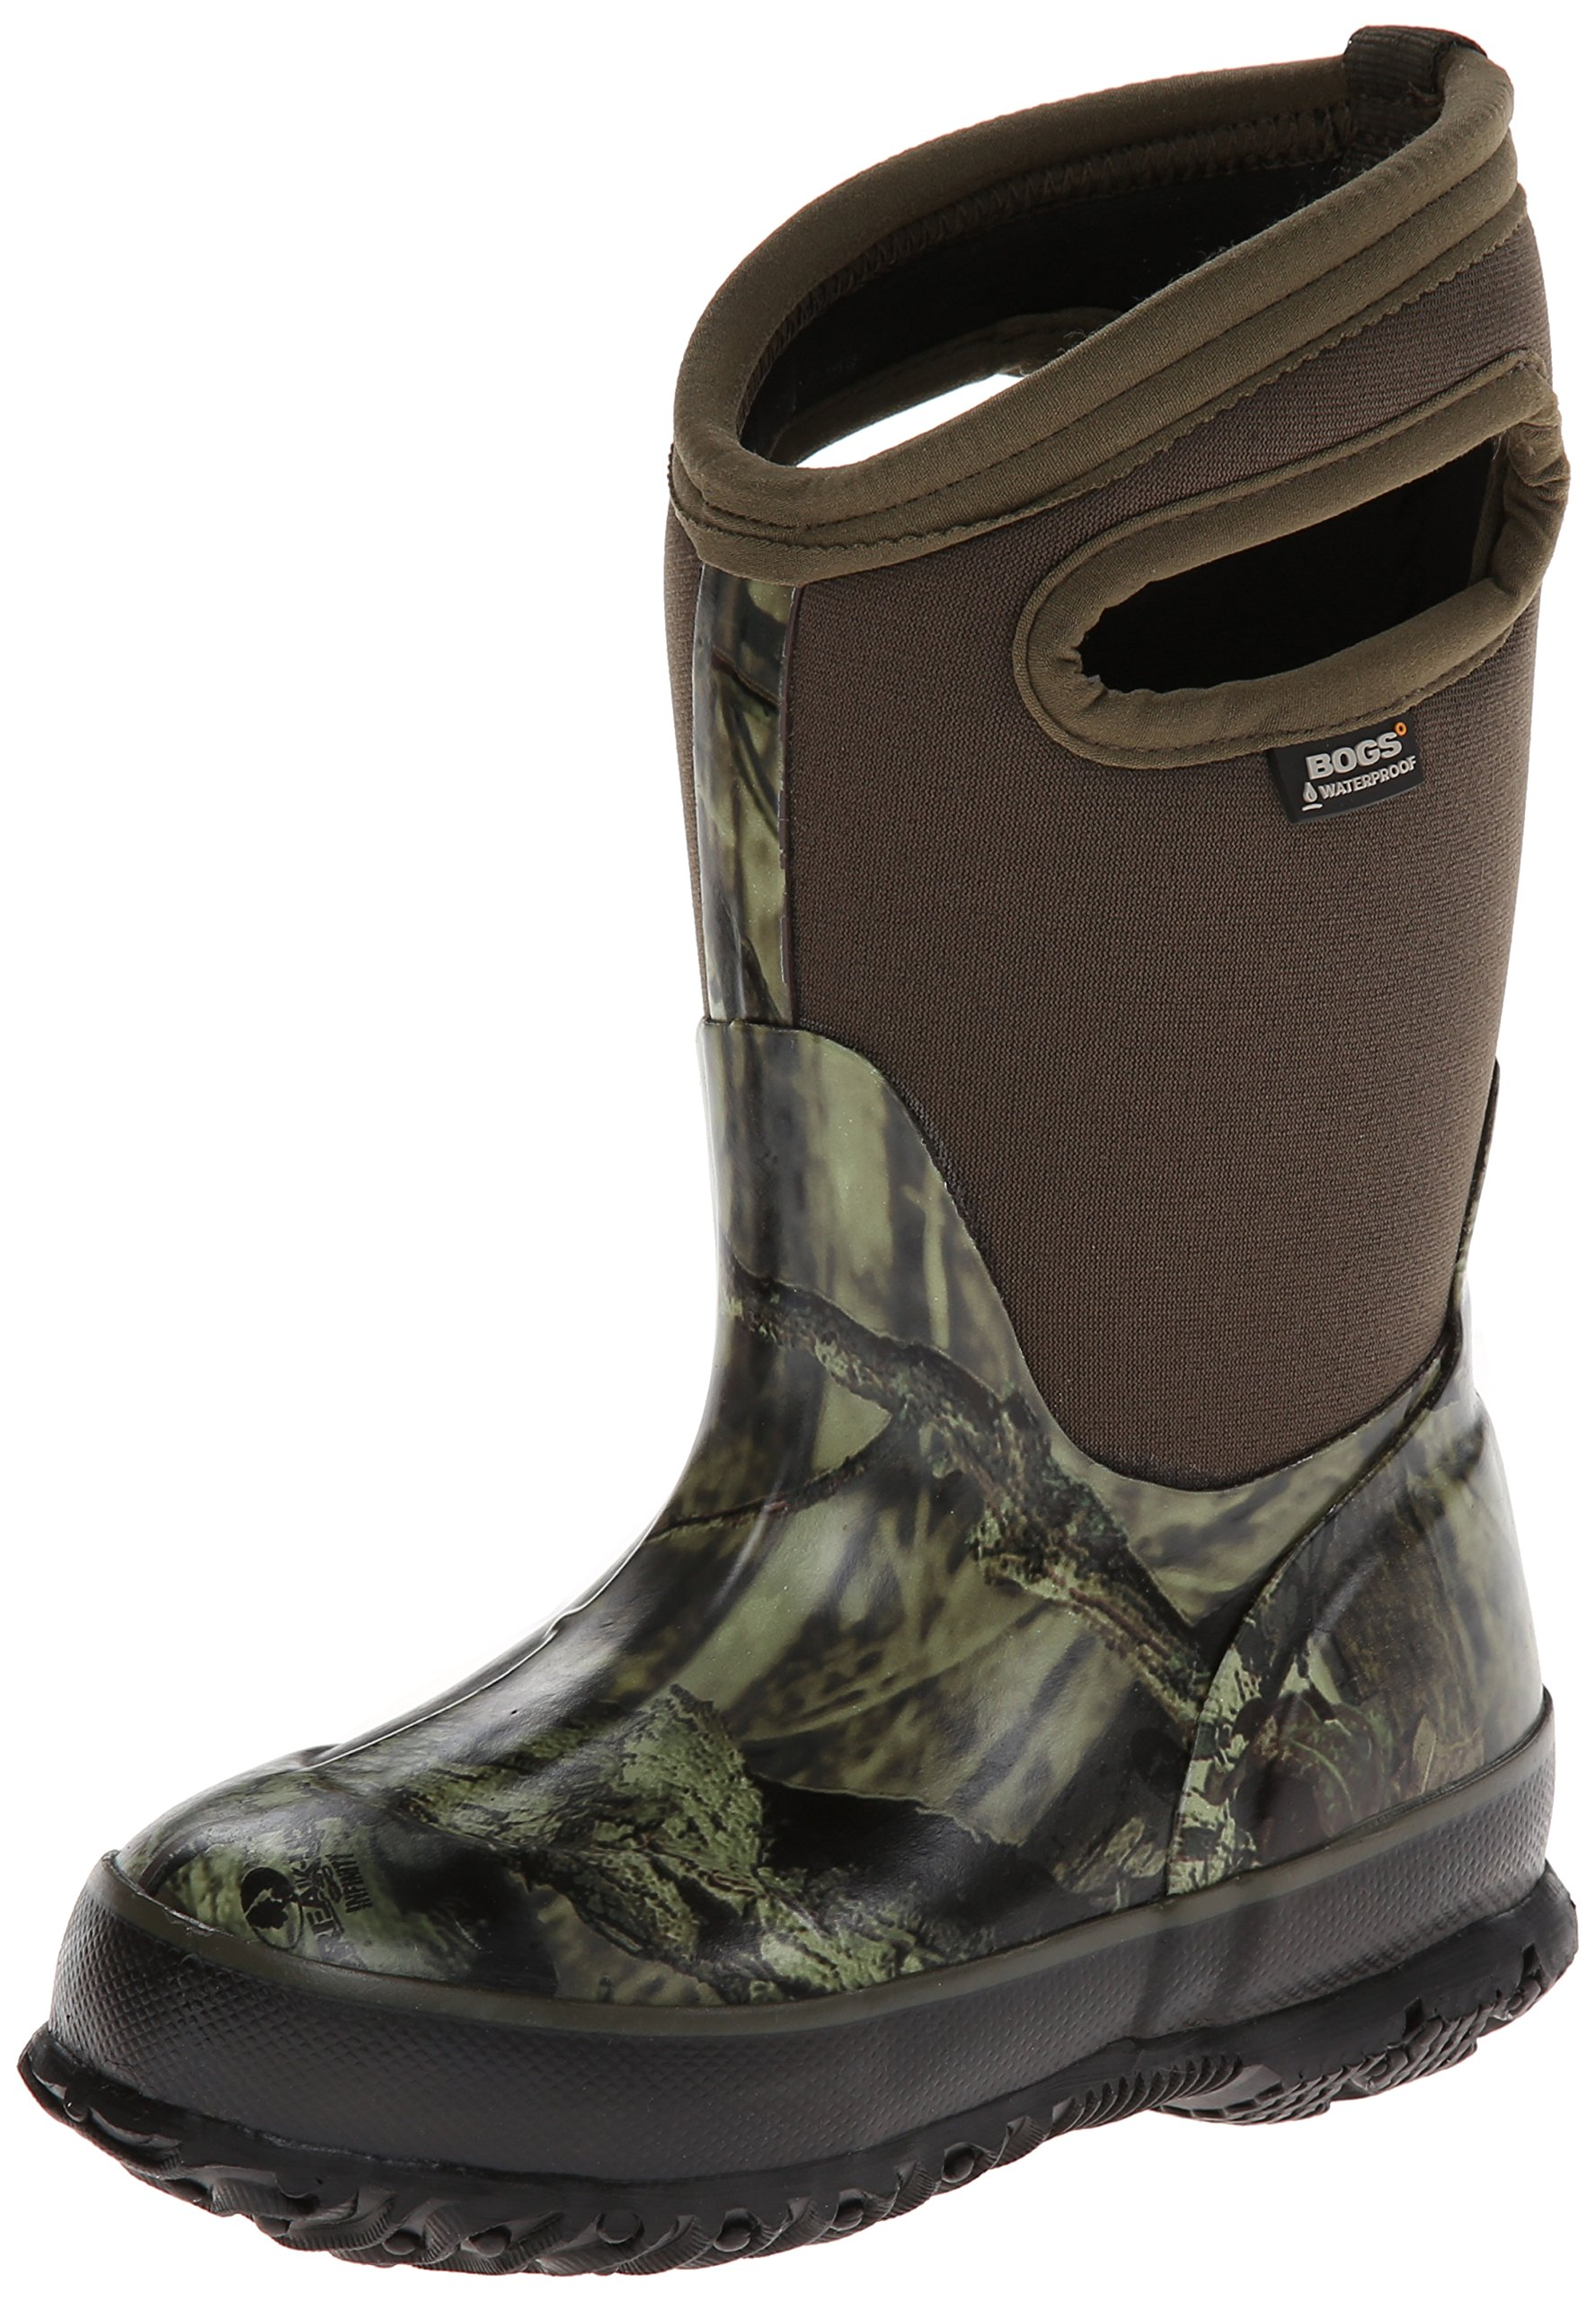 Bogs Kids Classic High Waterproof Insulated Rubber Neoprene Rain Boot, Camo Mossy Oak/Green/Multi, 13 M US Little Kid